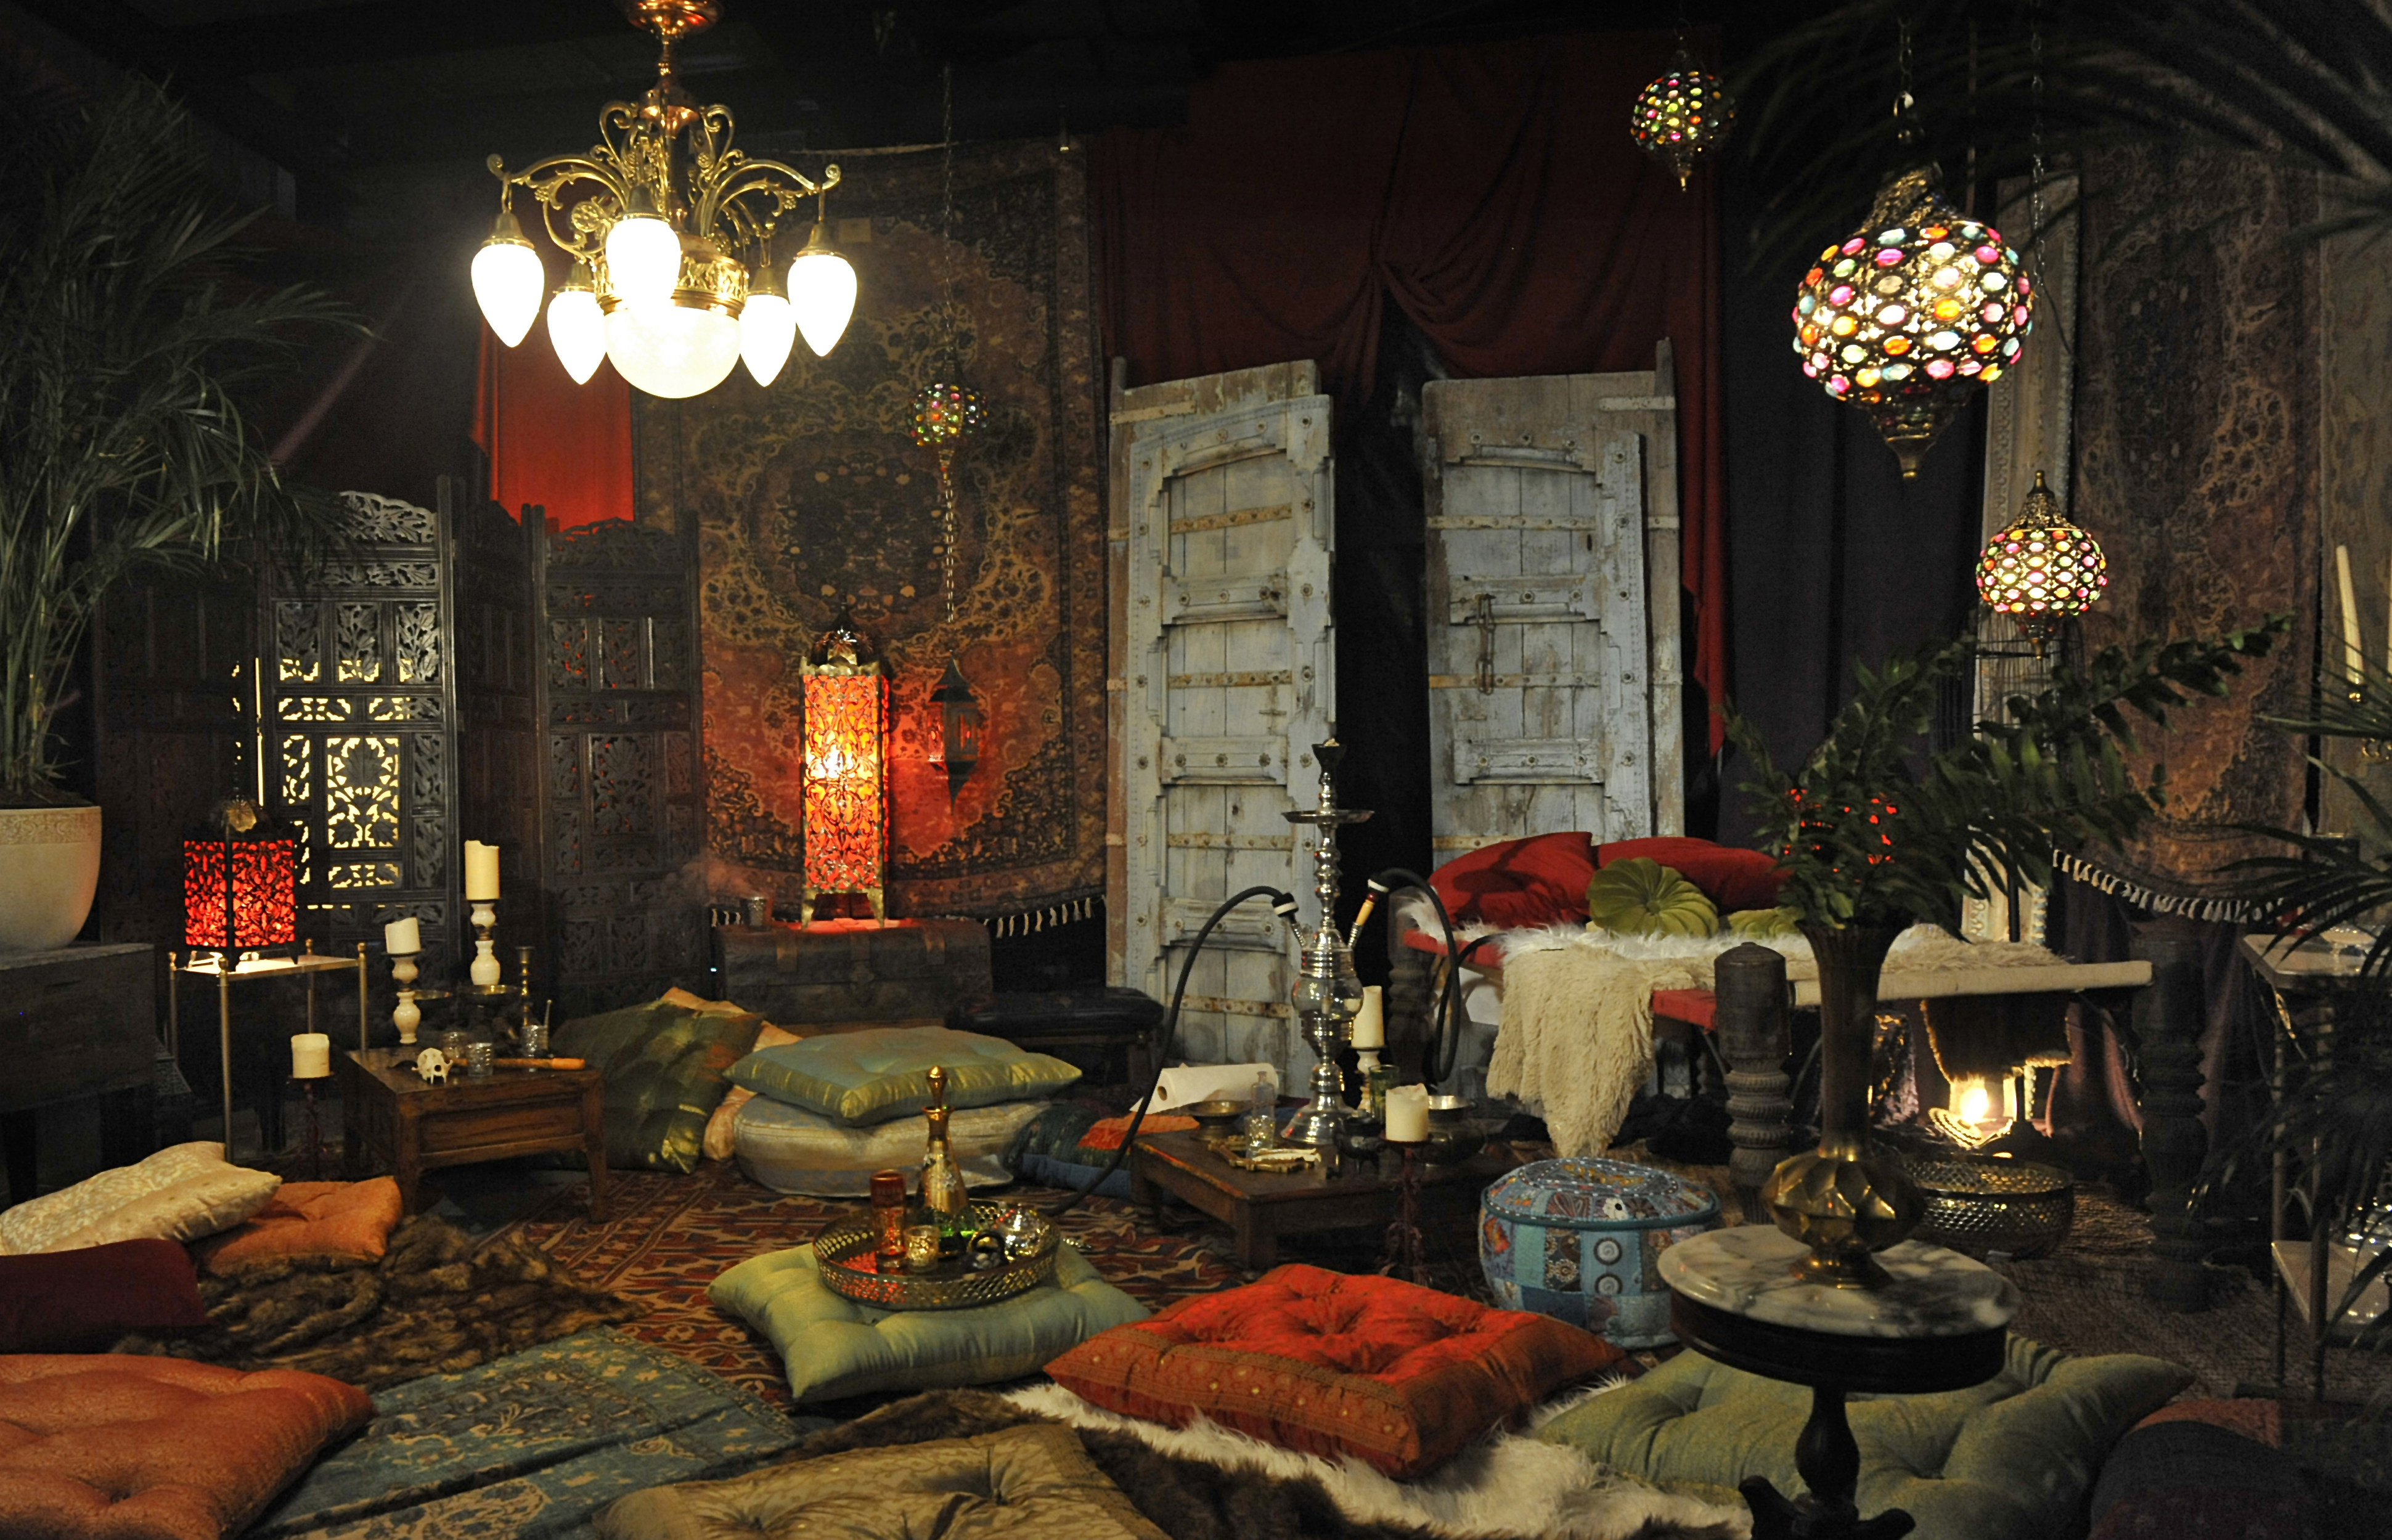 Opium Den from photoshoot